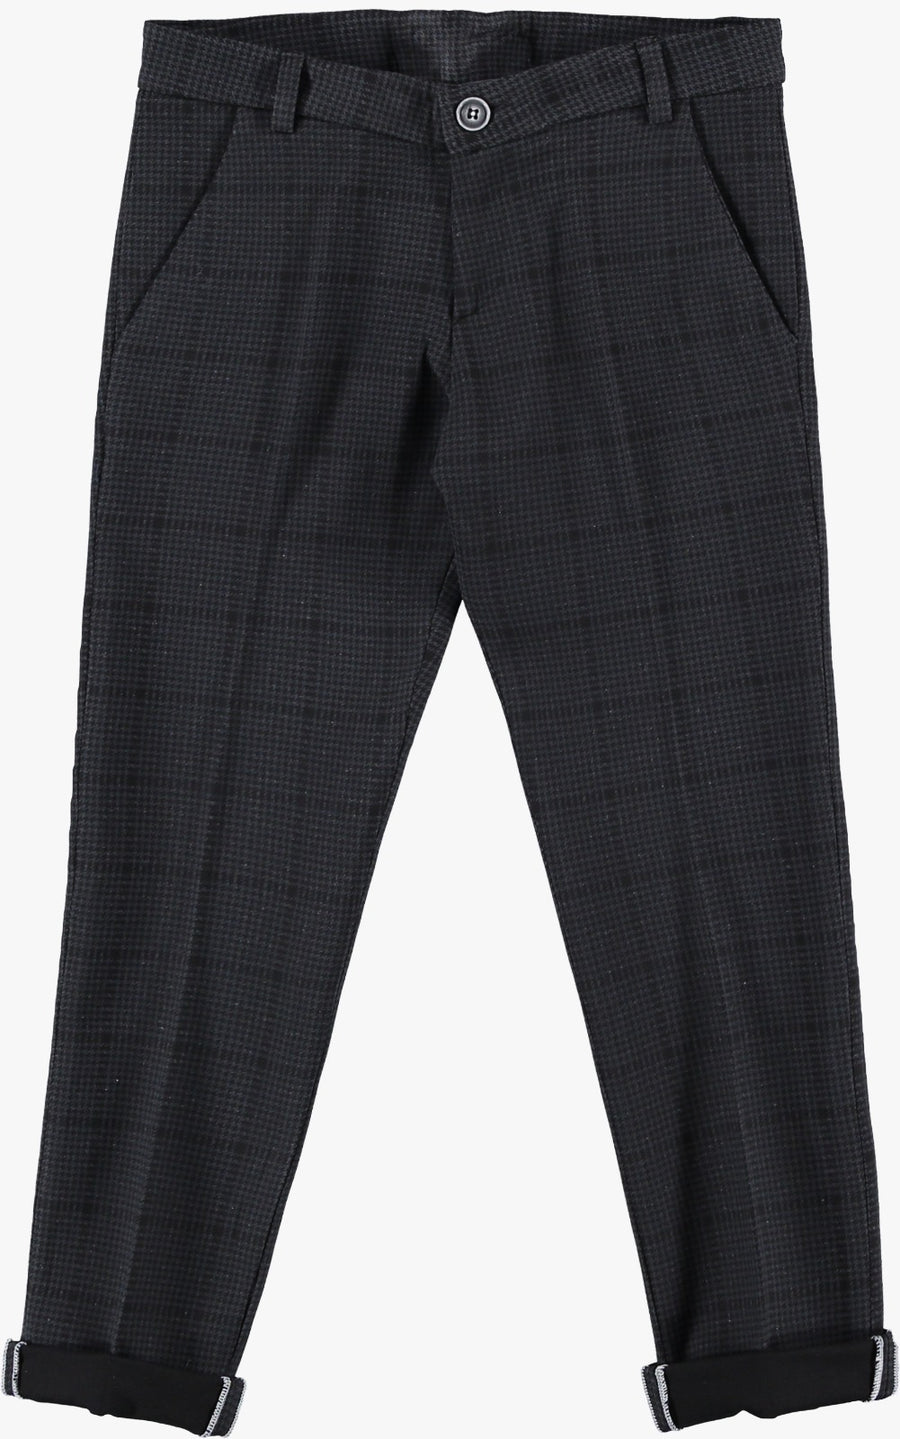 Houndstooth Pants by Manuell & Frank